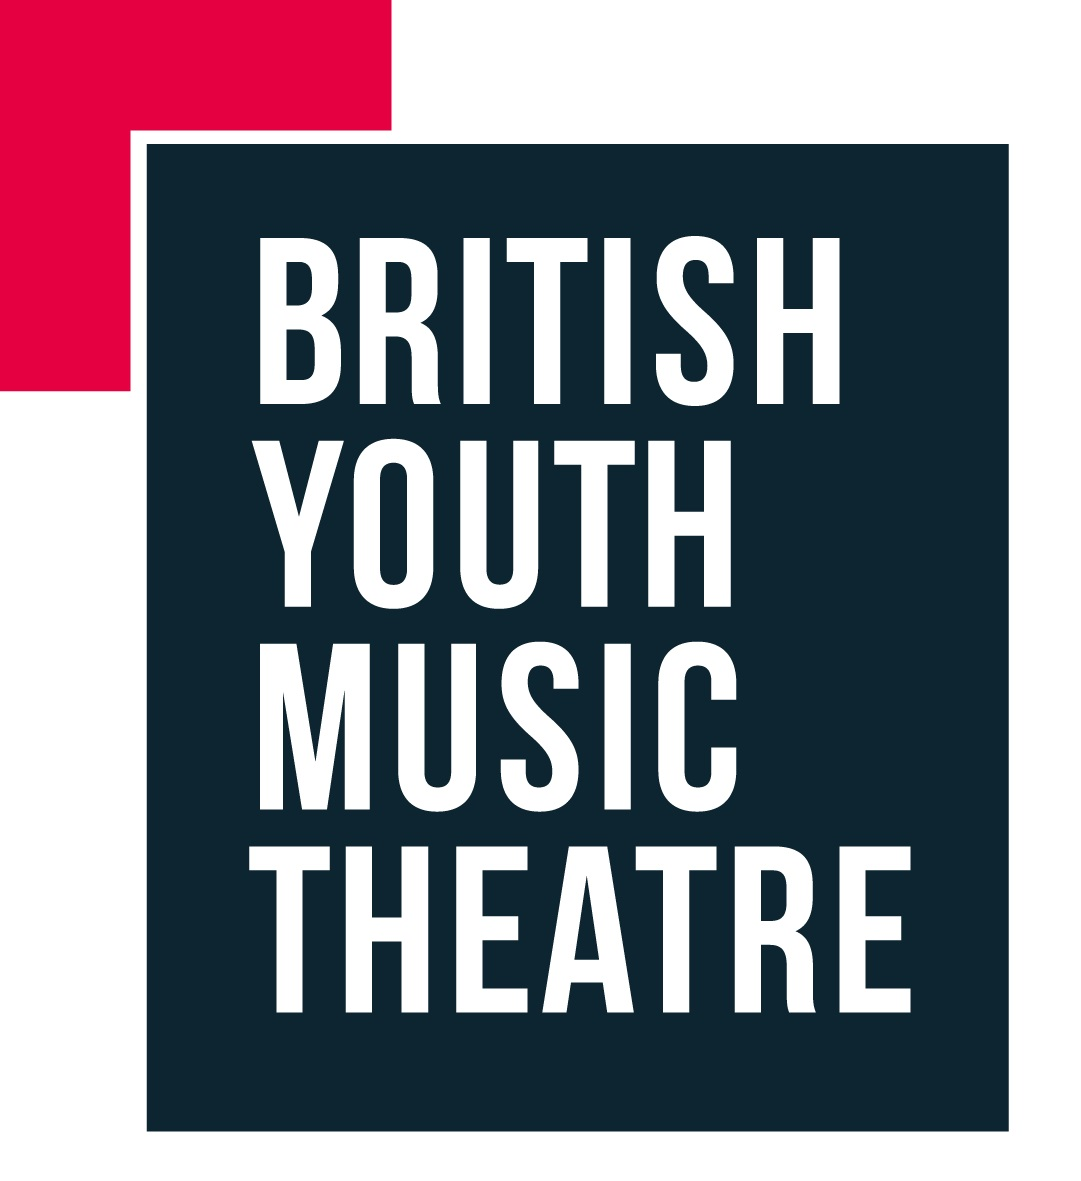 British Youth Music Theatre - Wikipedia